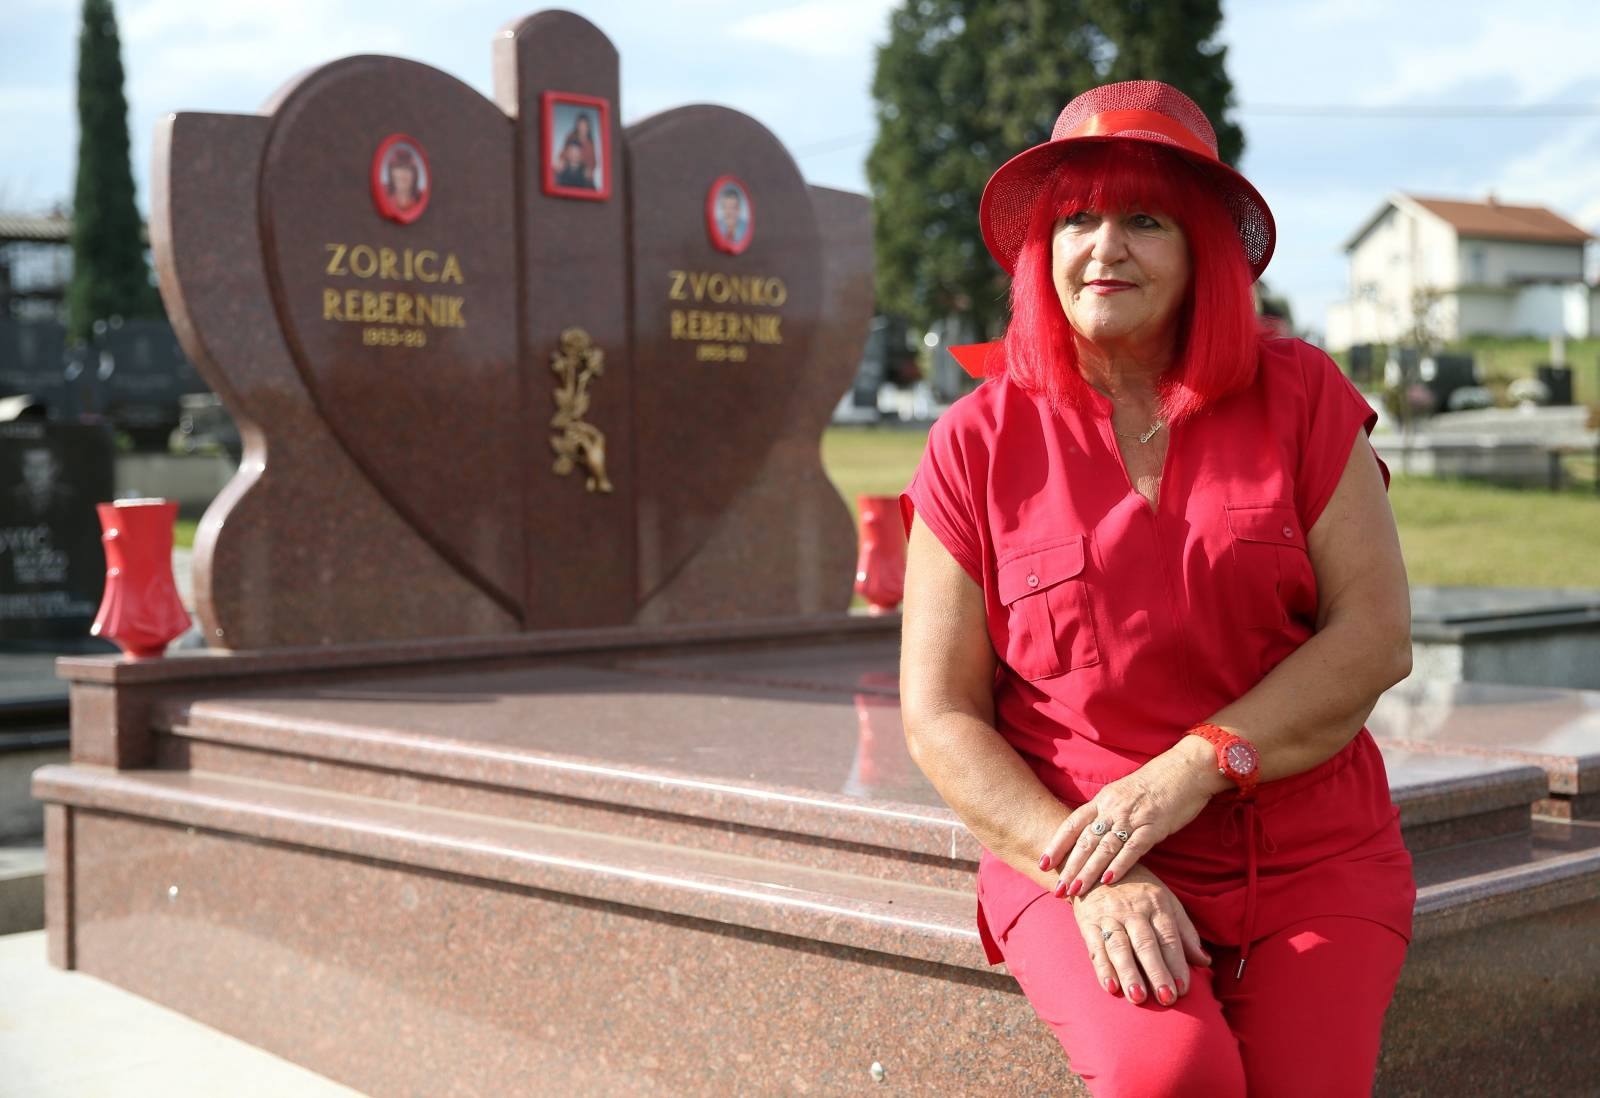 Zorica Rebernik, obsessed with the red color, sits on her grave in the village of Breze near Tuzla